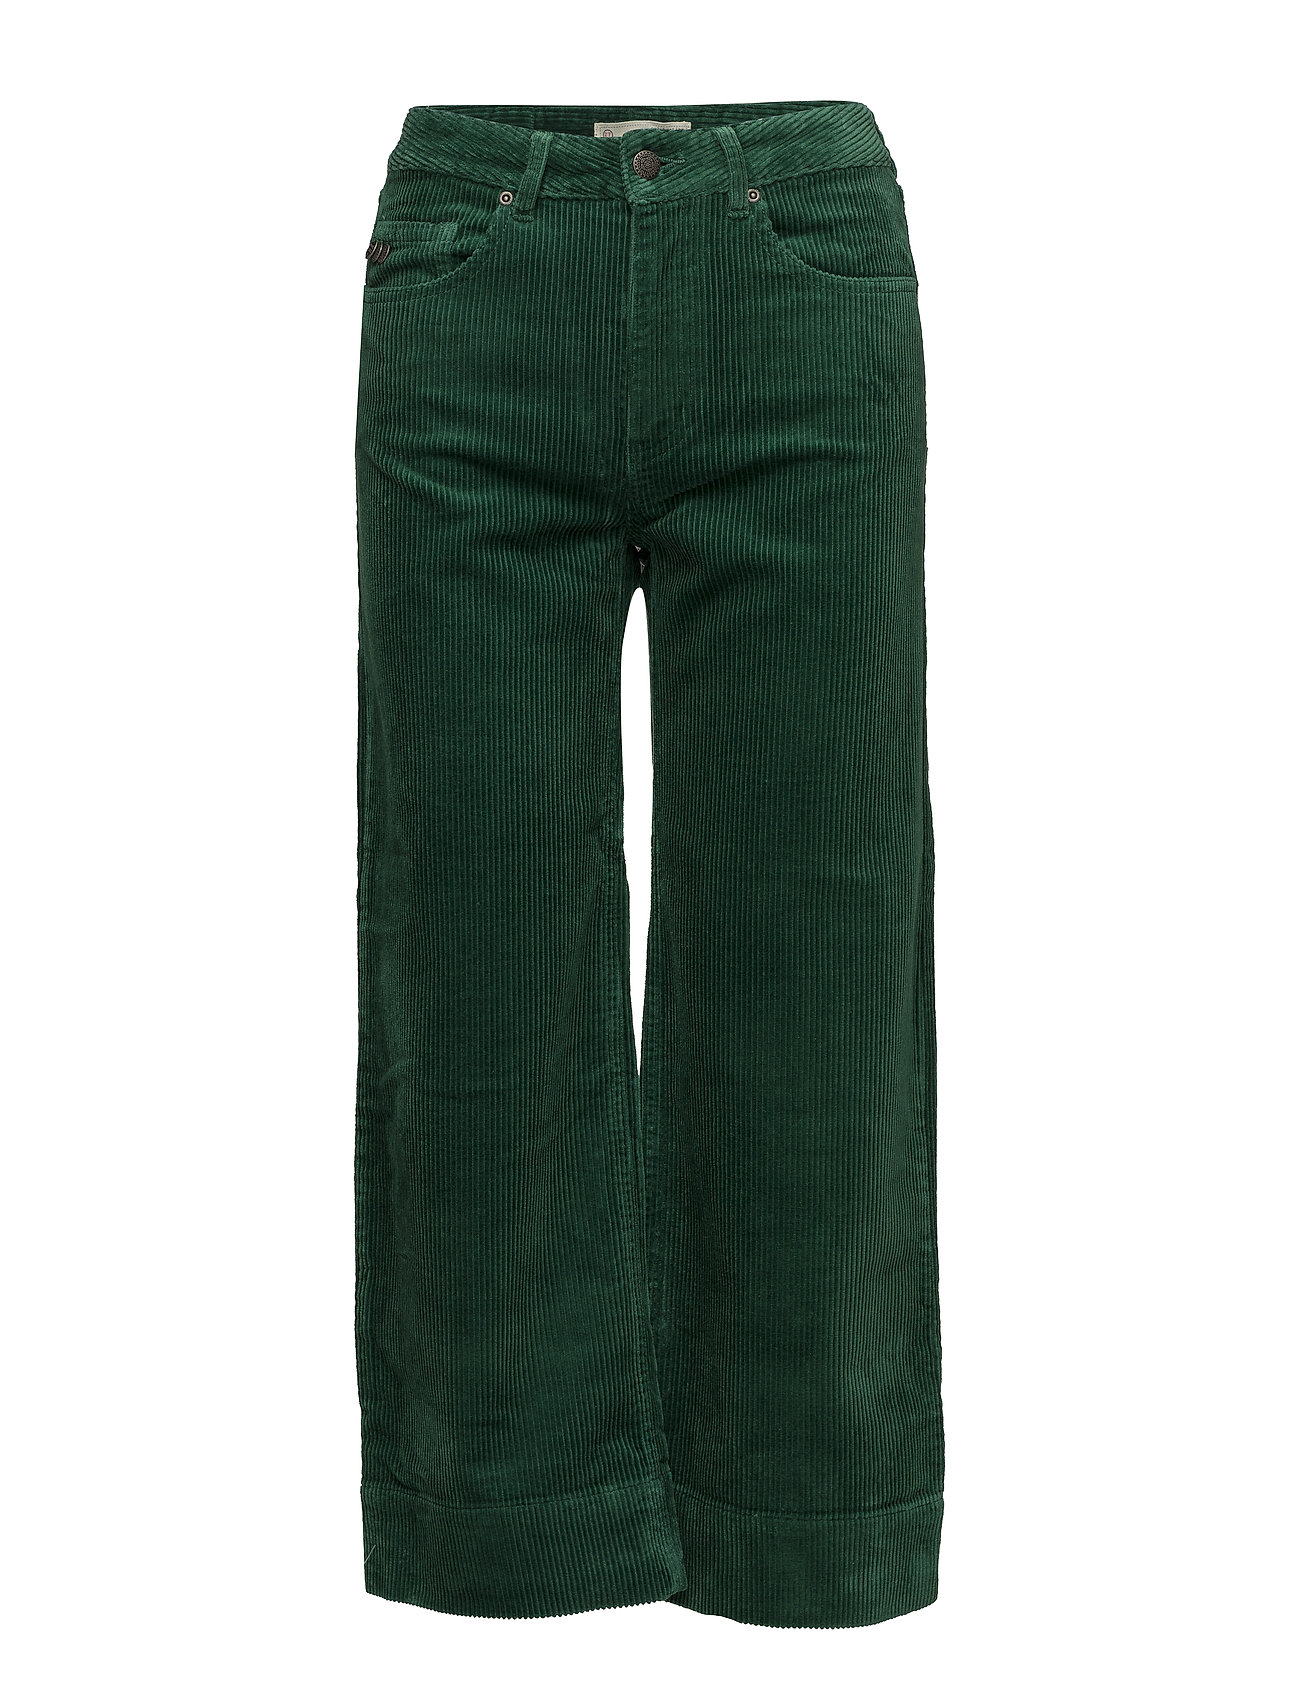 ODD MOLLY sincerely pant - GREEN DRAGON